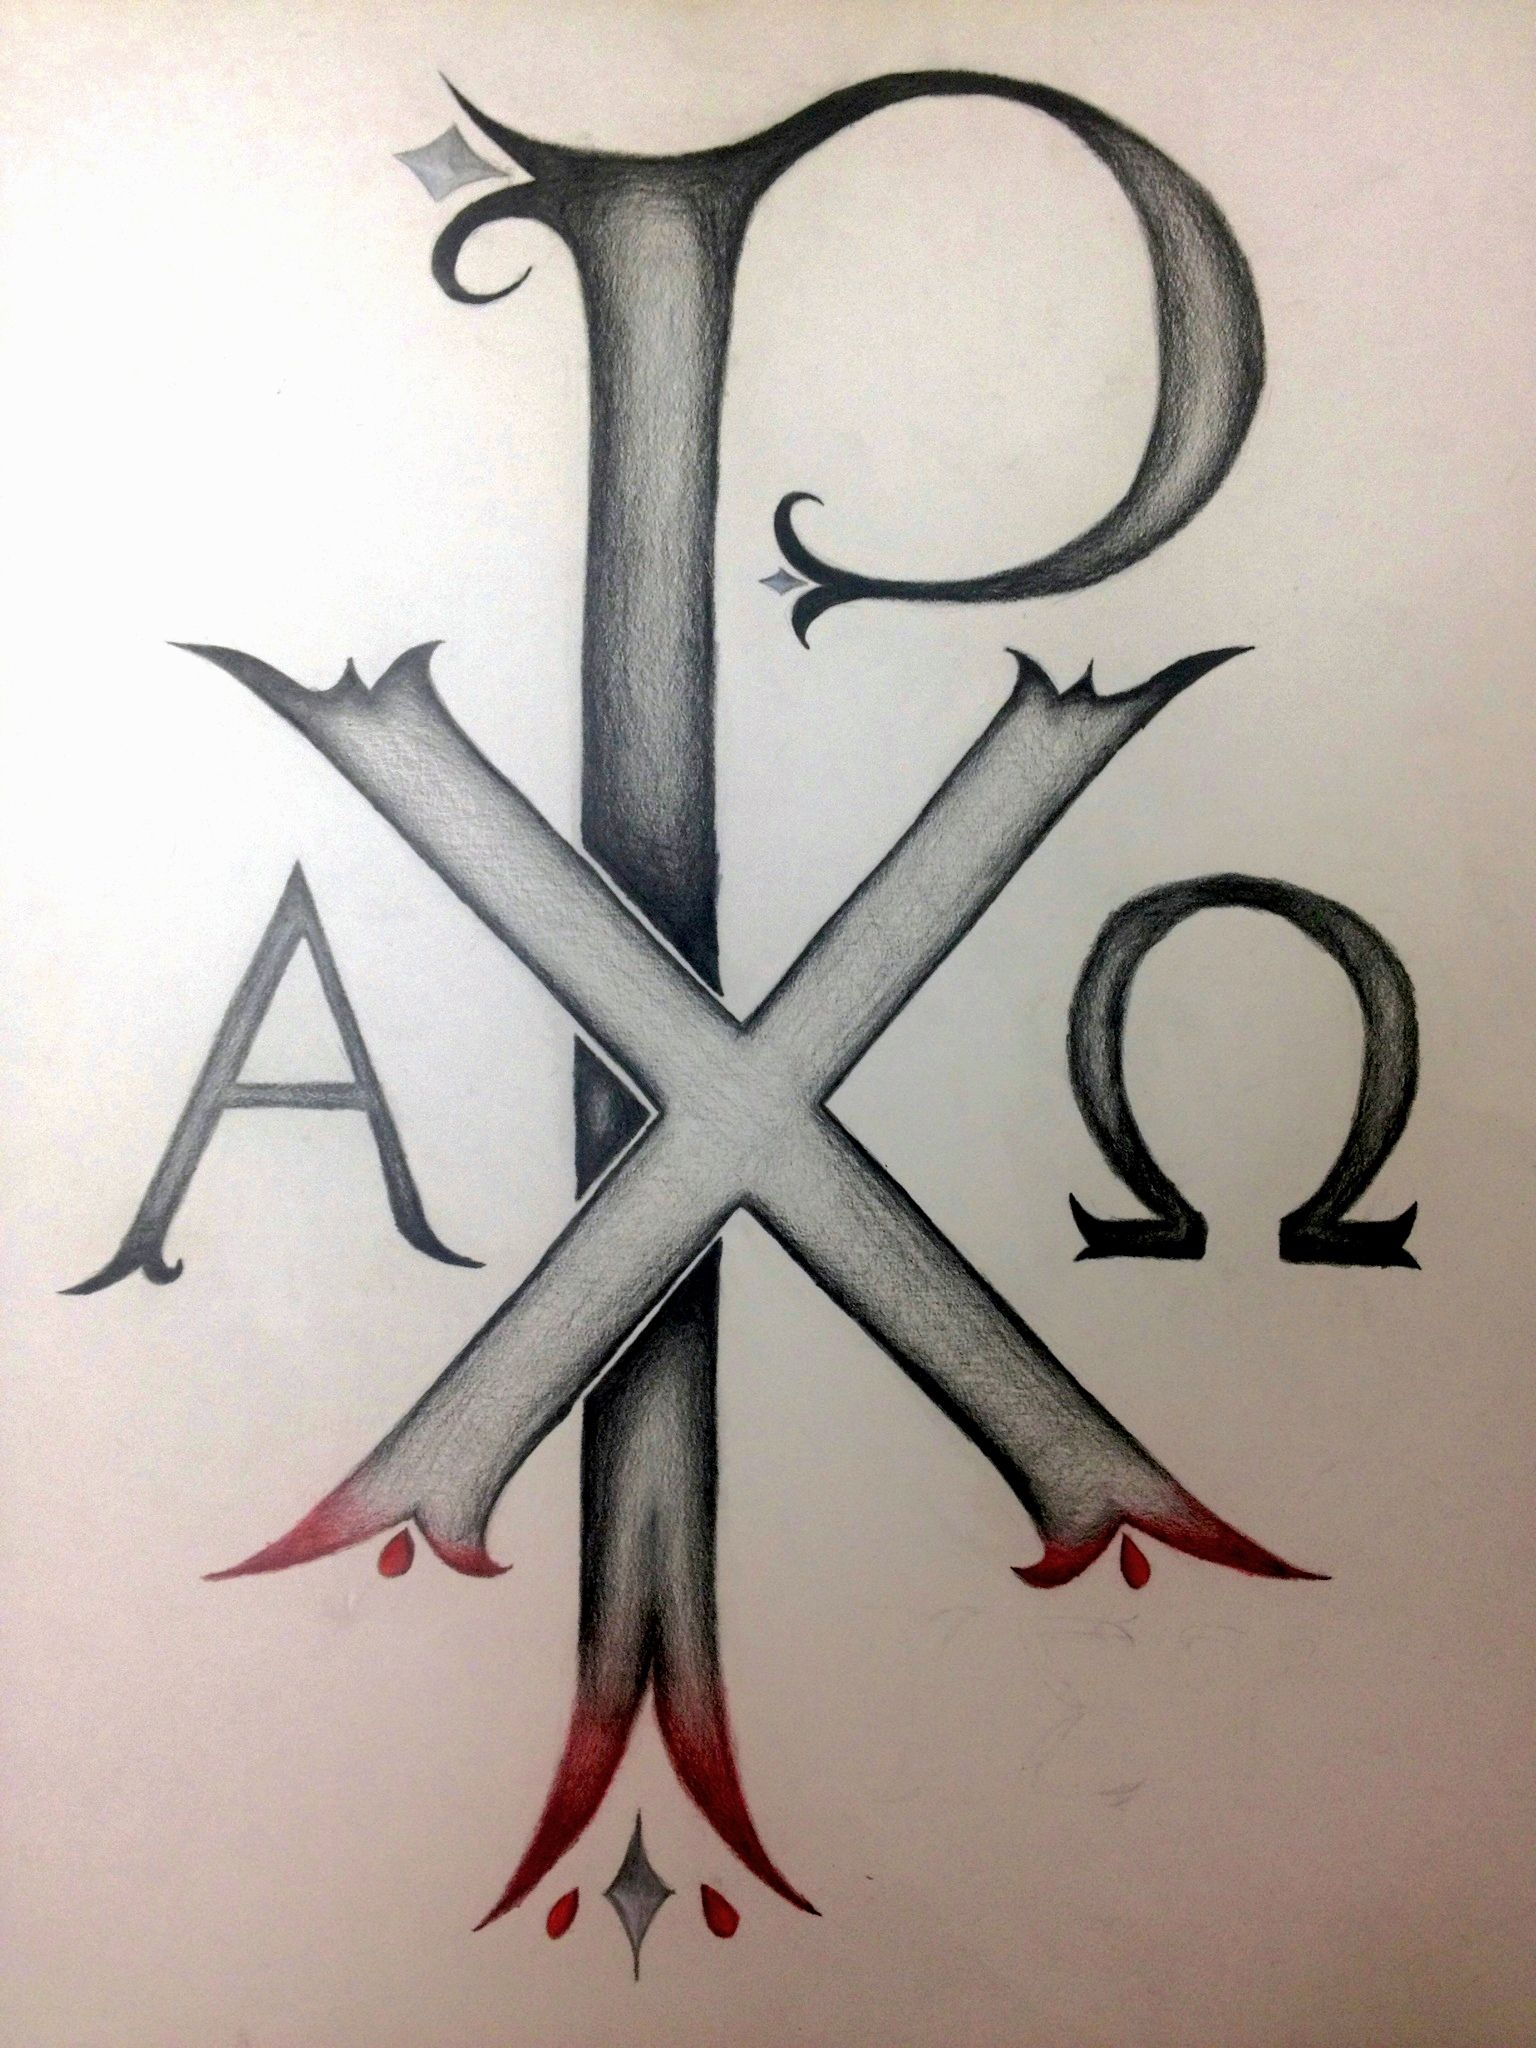 tattoo 1 chi rho the oldest known christogram in existence that begins with alpha and ends. Black Bedroom Furniture Sets. Home Design Ideas